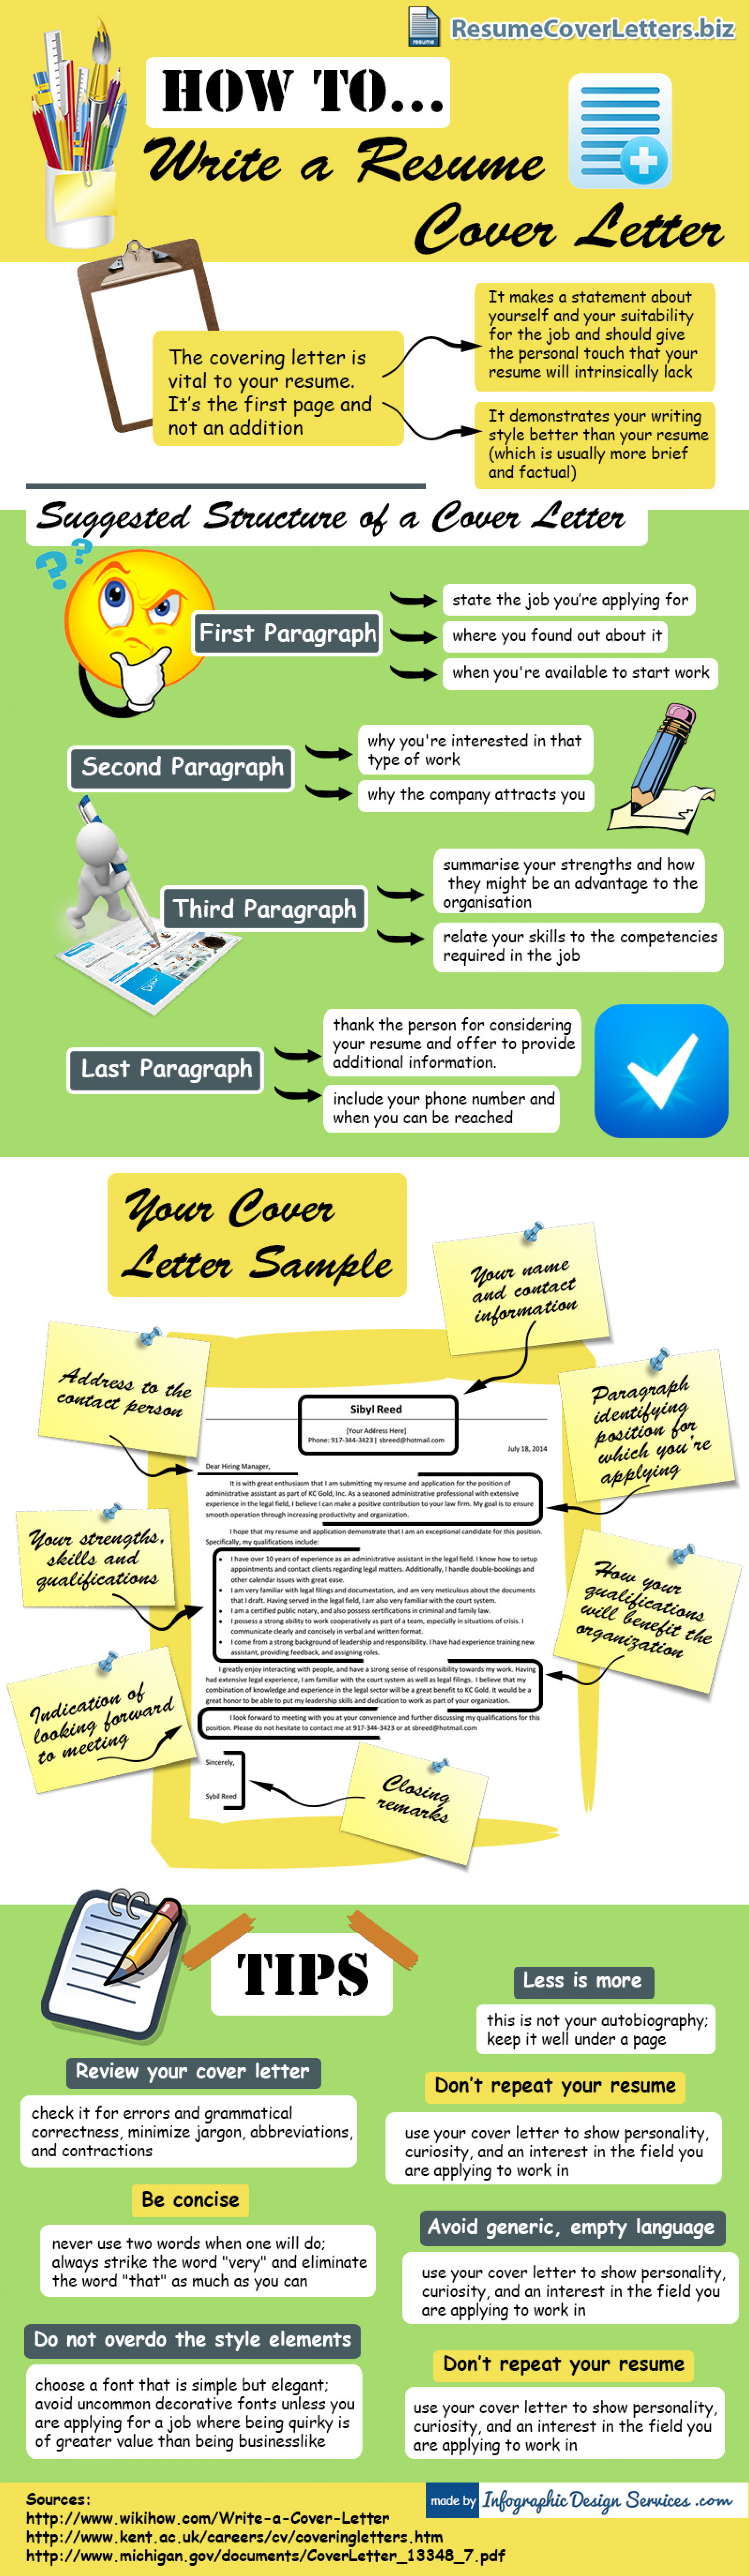 resume cover letter writing tips infographic. Resume Example. Resume CV Cover Letter